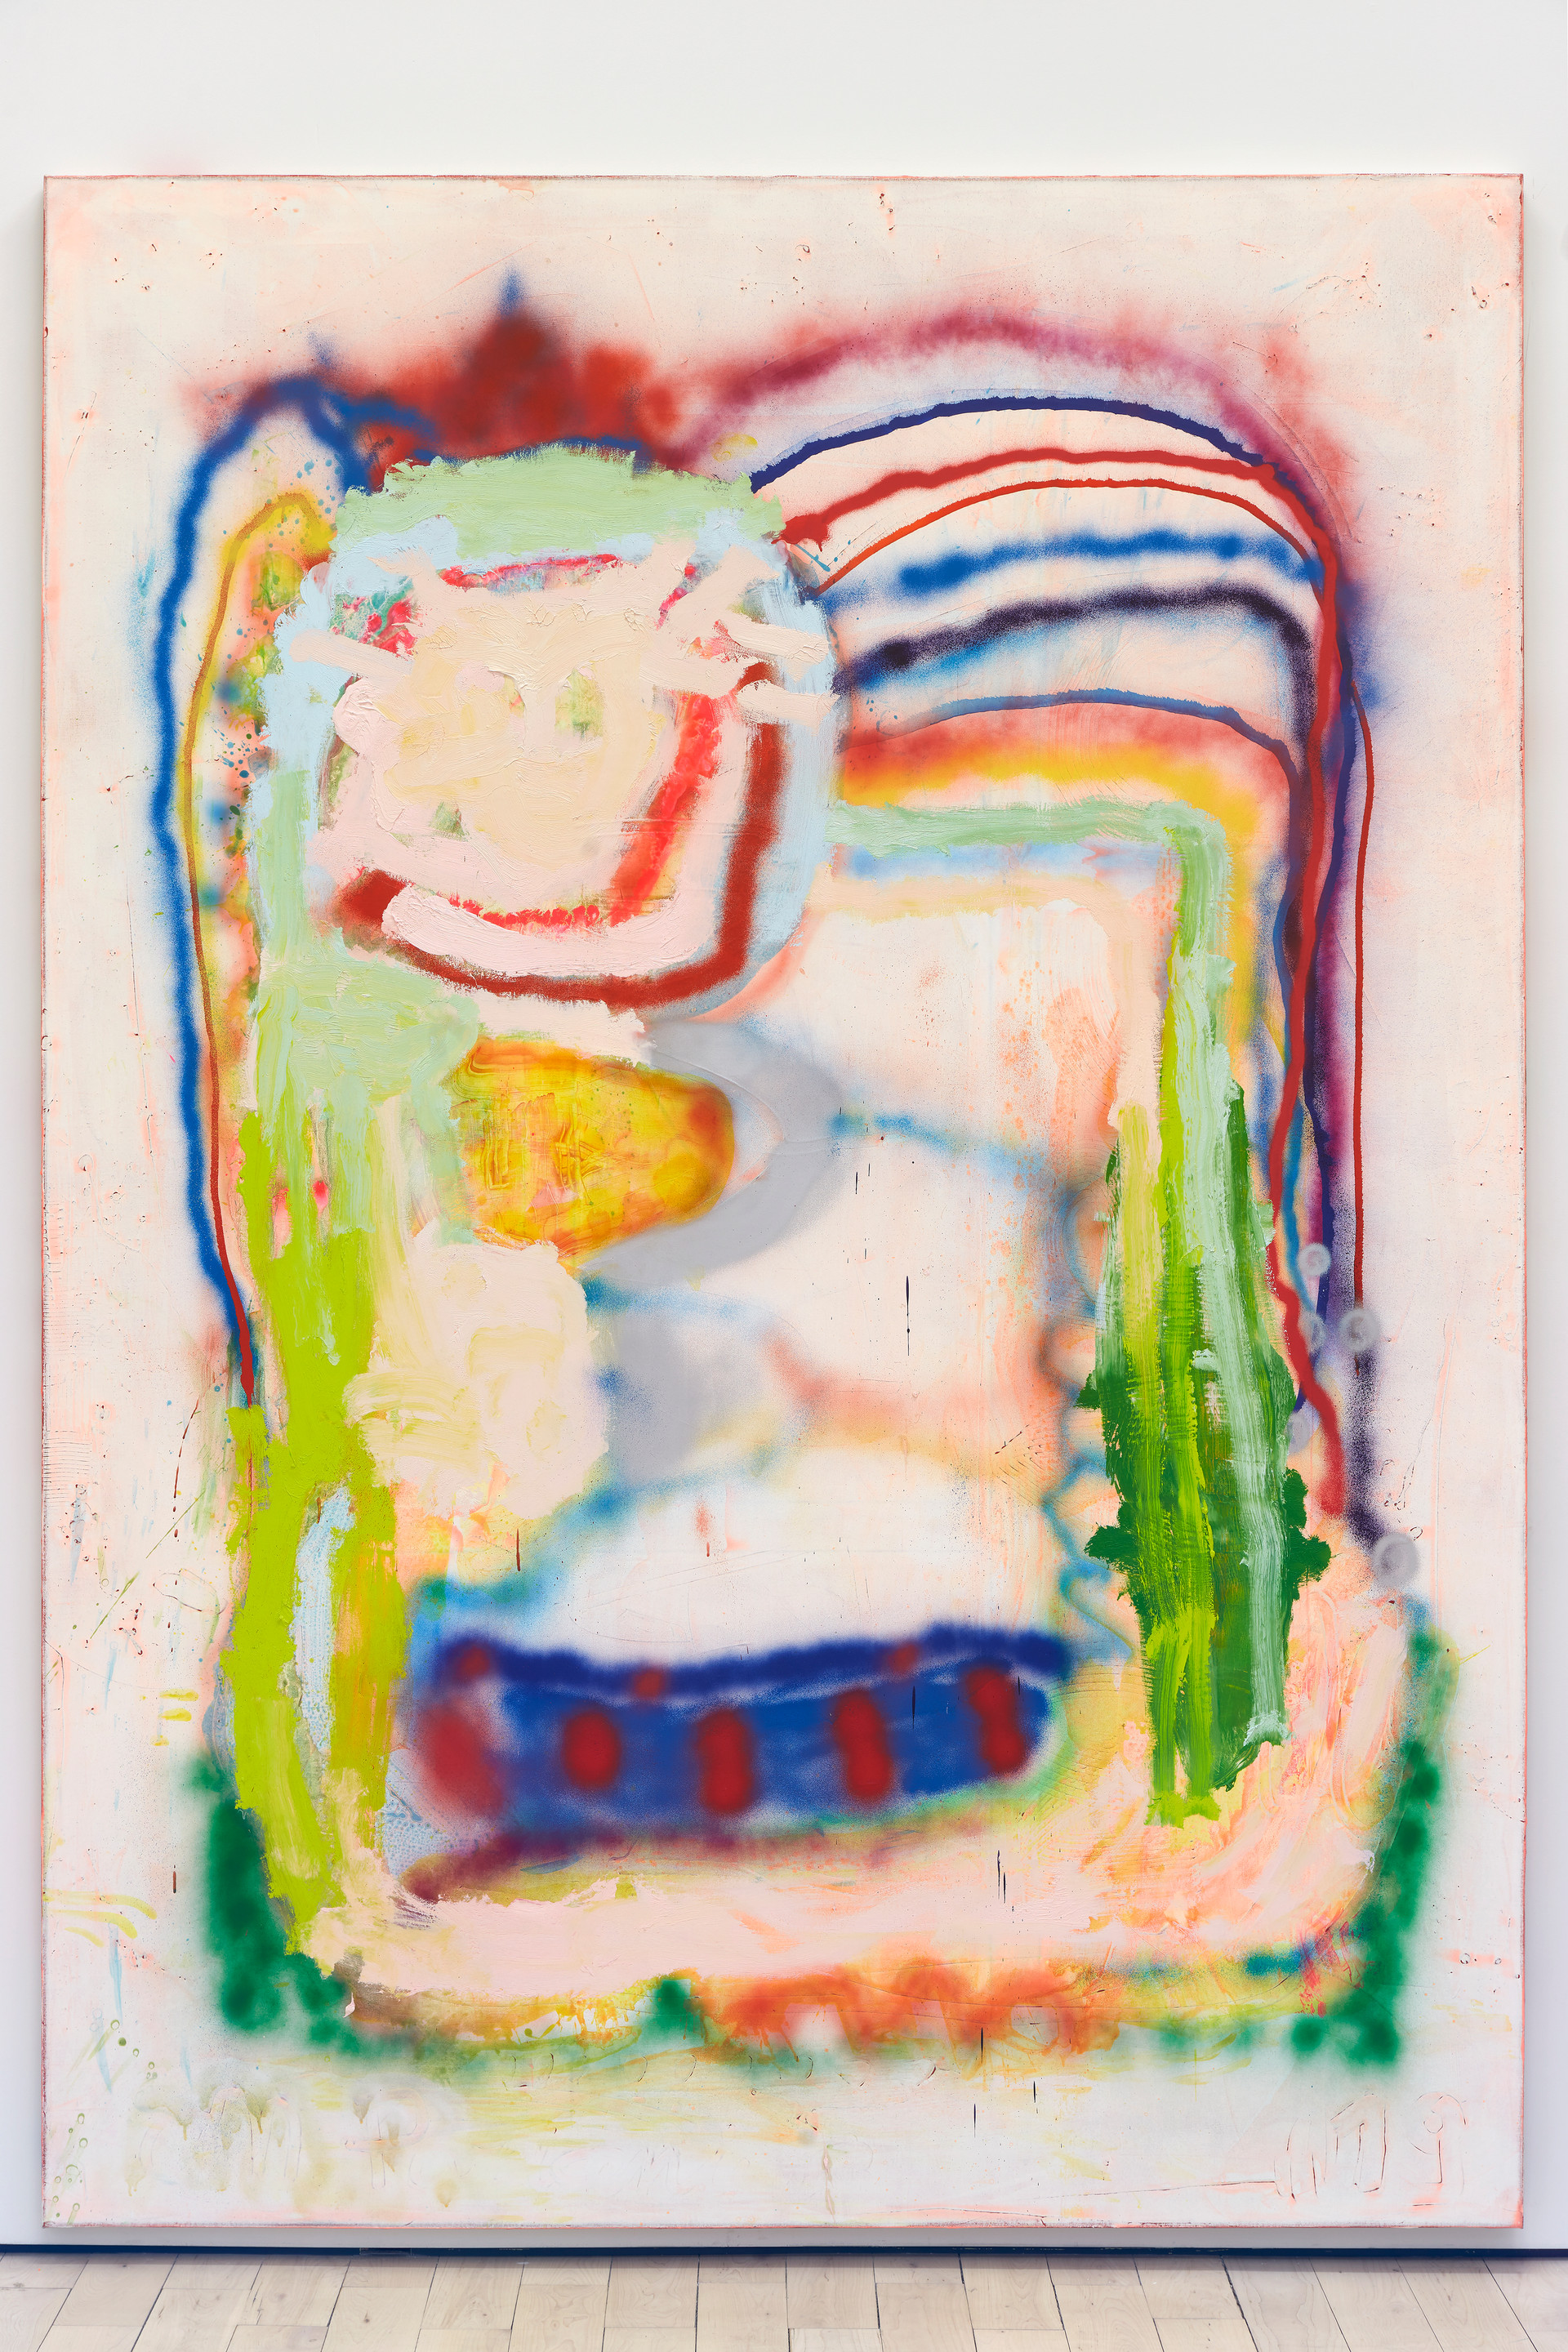 Marco Pariani  Orange Shock Hat, 2020  Oil, acrylic and spray paint on canvas  72 x 100 inches